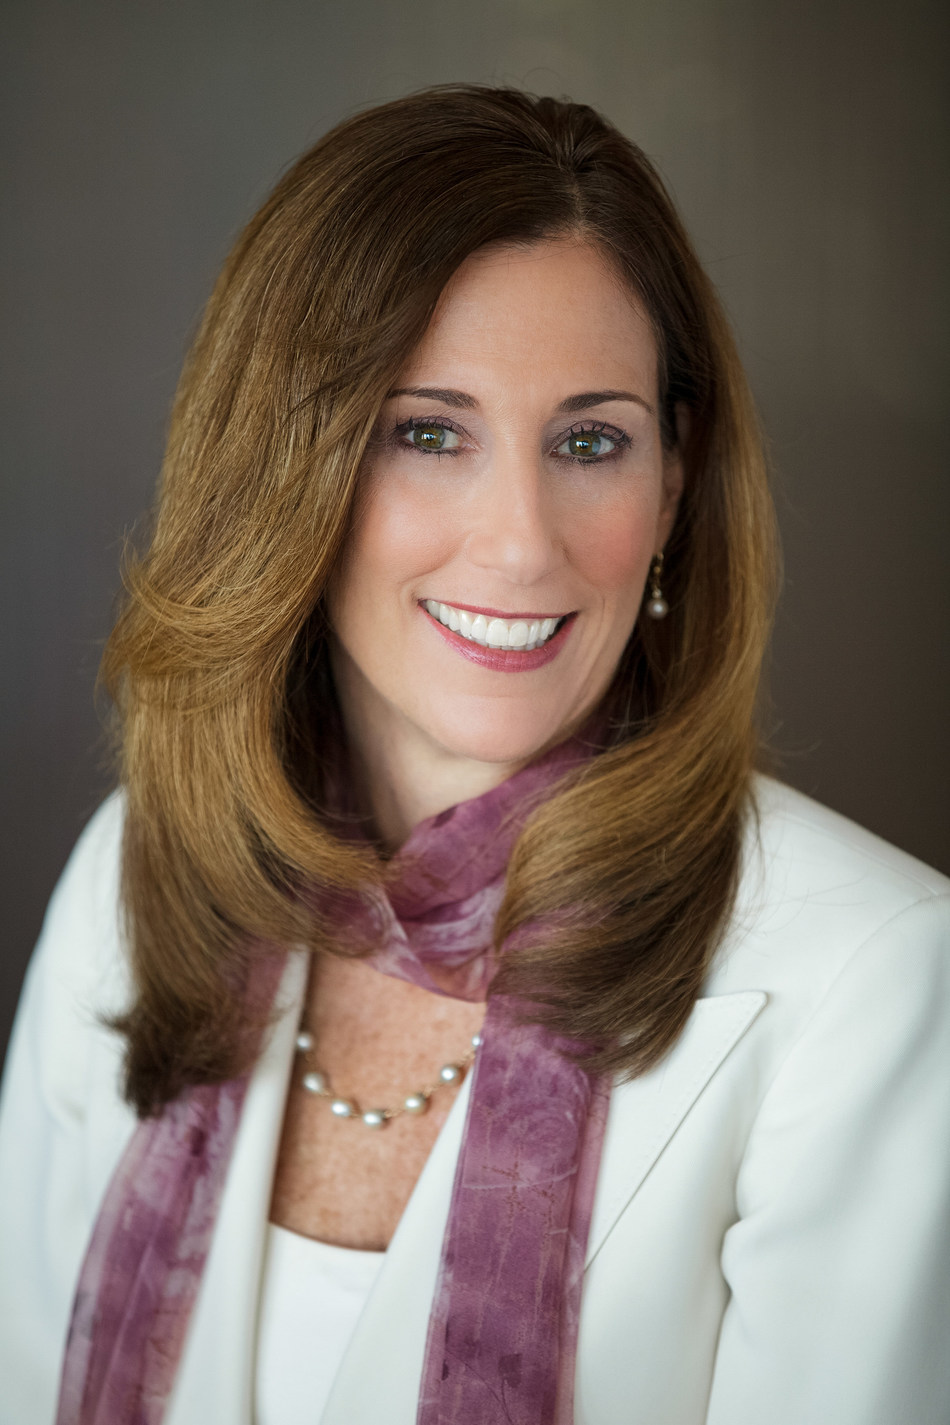 Jeanine Raquet, Executive Vice President, Insurance Operations and Distribution